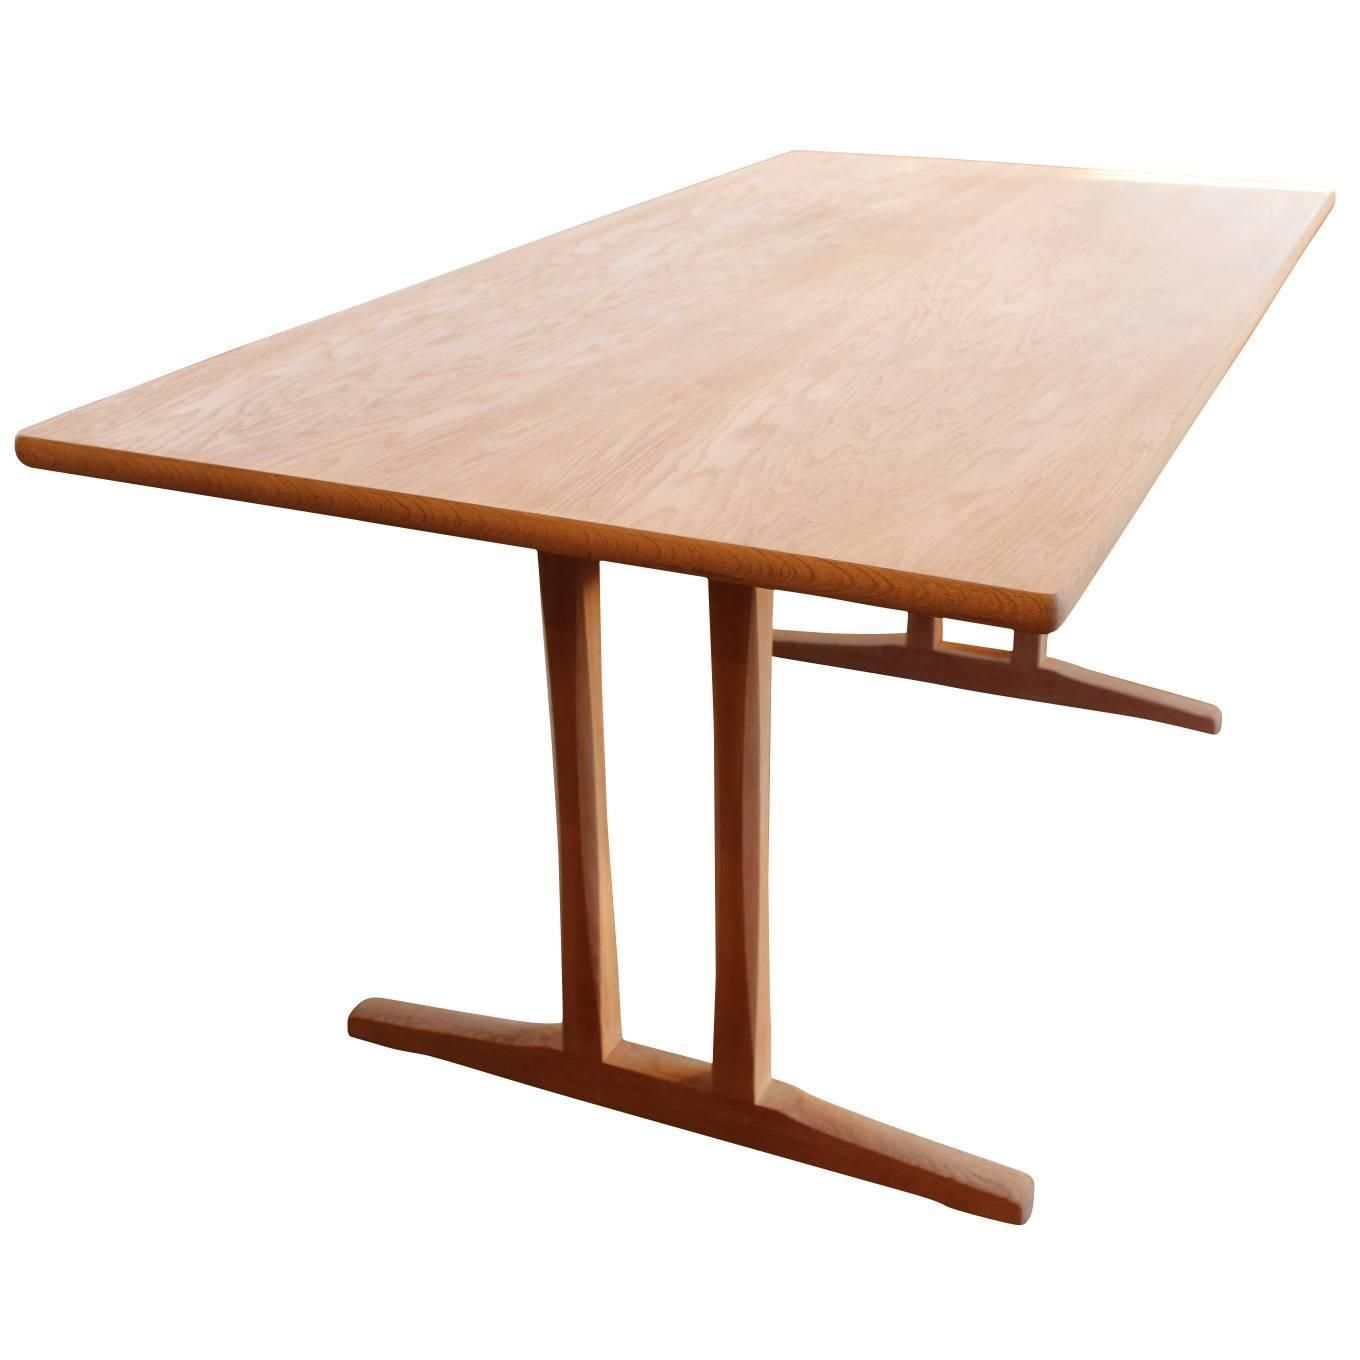 Shaker Dining Table, C18, Designed By Børge Mogensen And F.D.B. Furniture,  1957